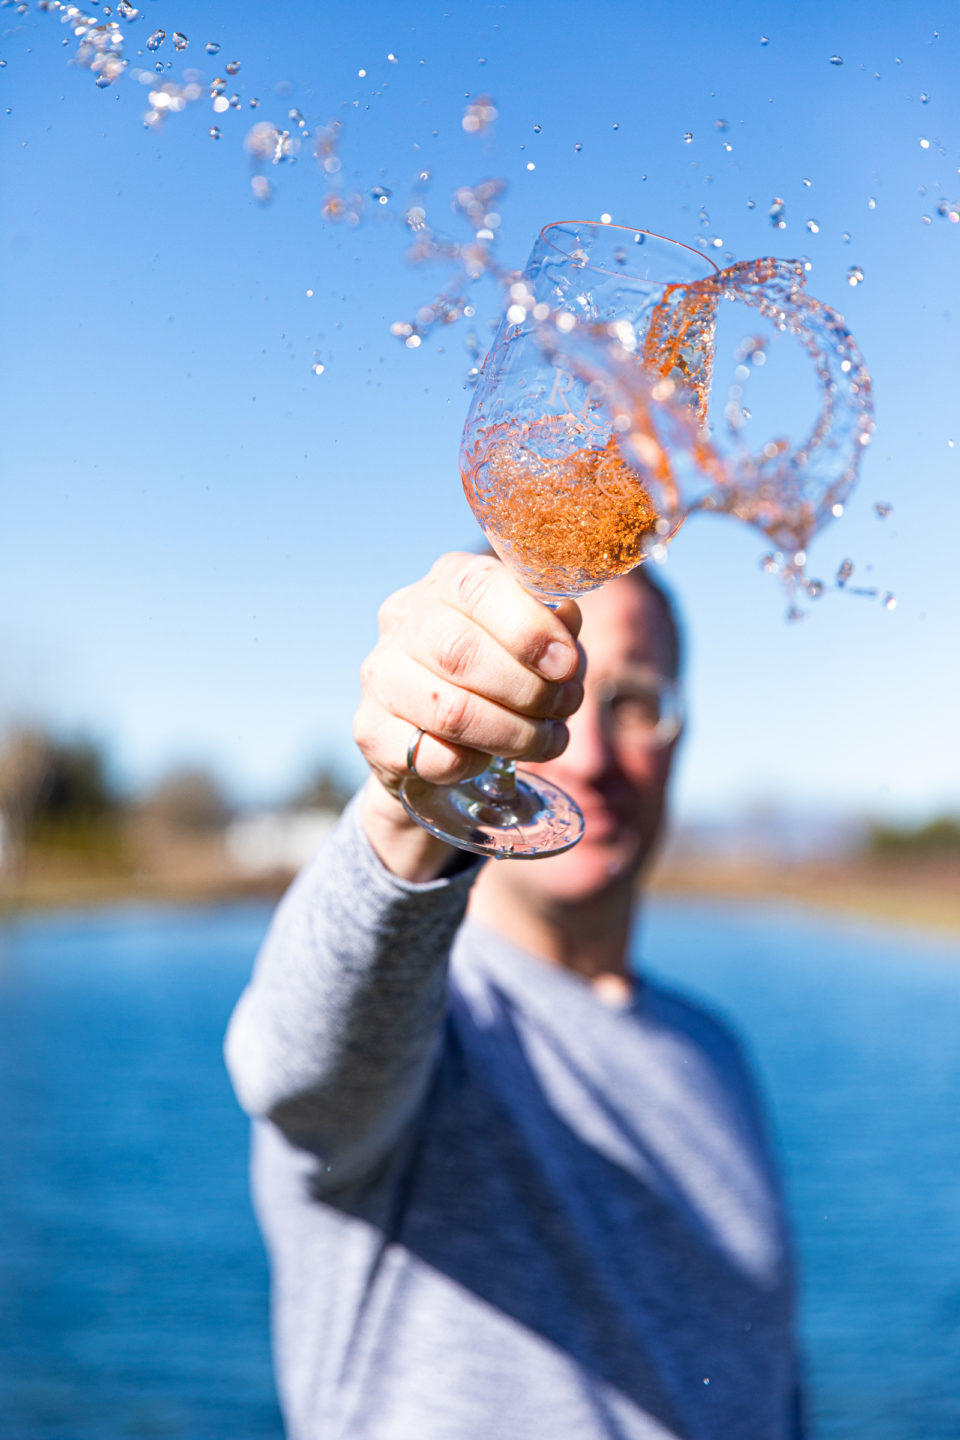 Man Splashing Rosé Wine